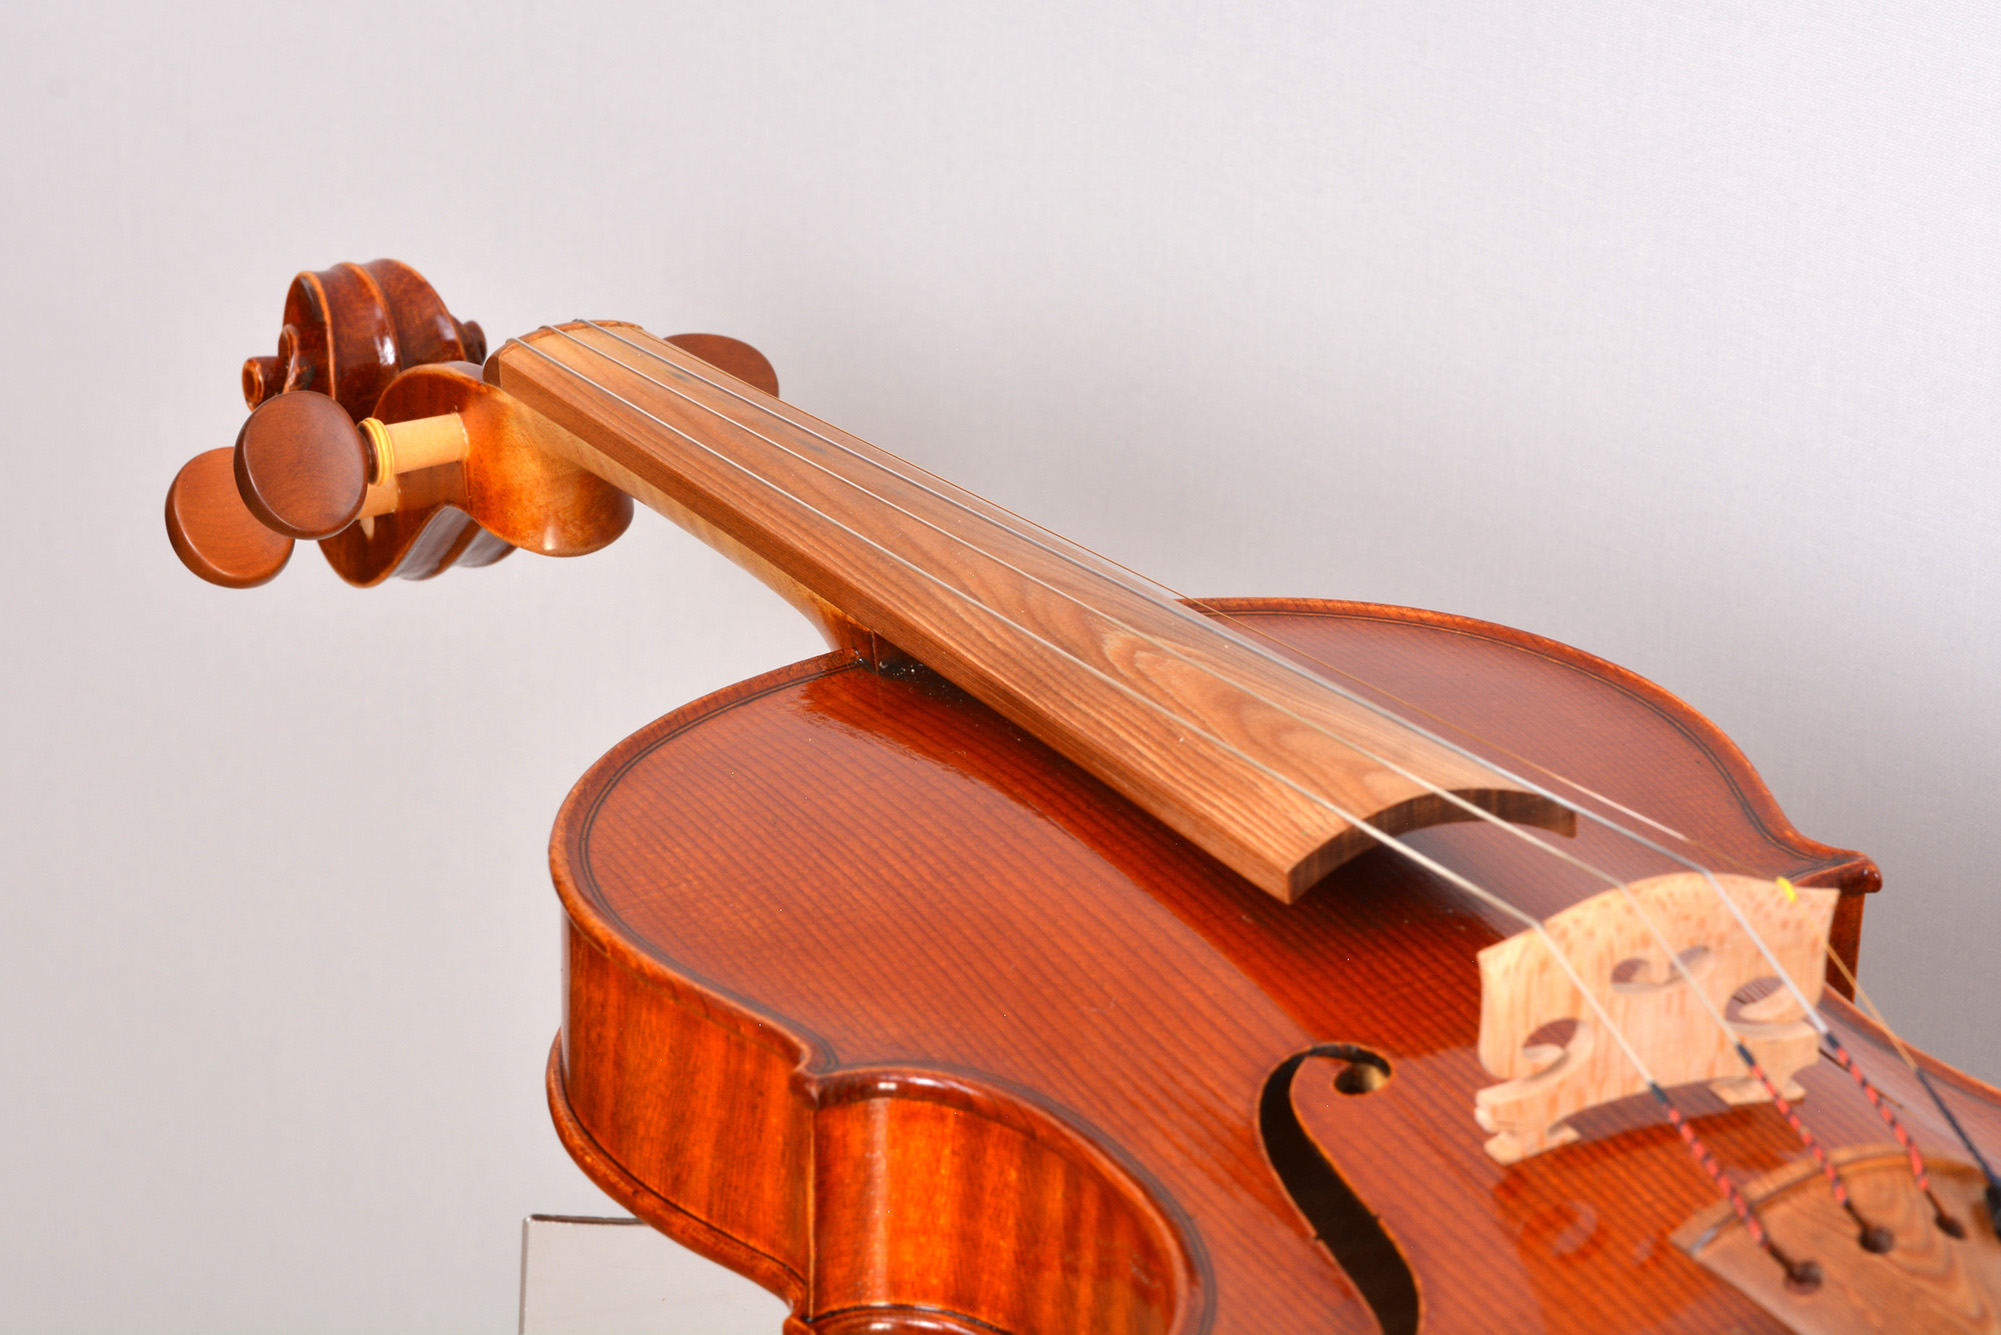 Violin with a fingerboard from Sonowood spruce equipped by Wilhelm Geigenbau